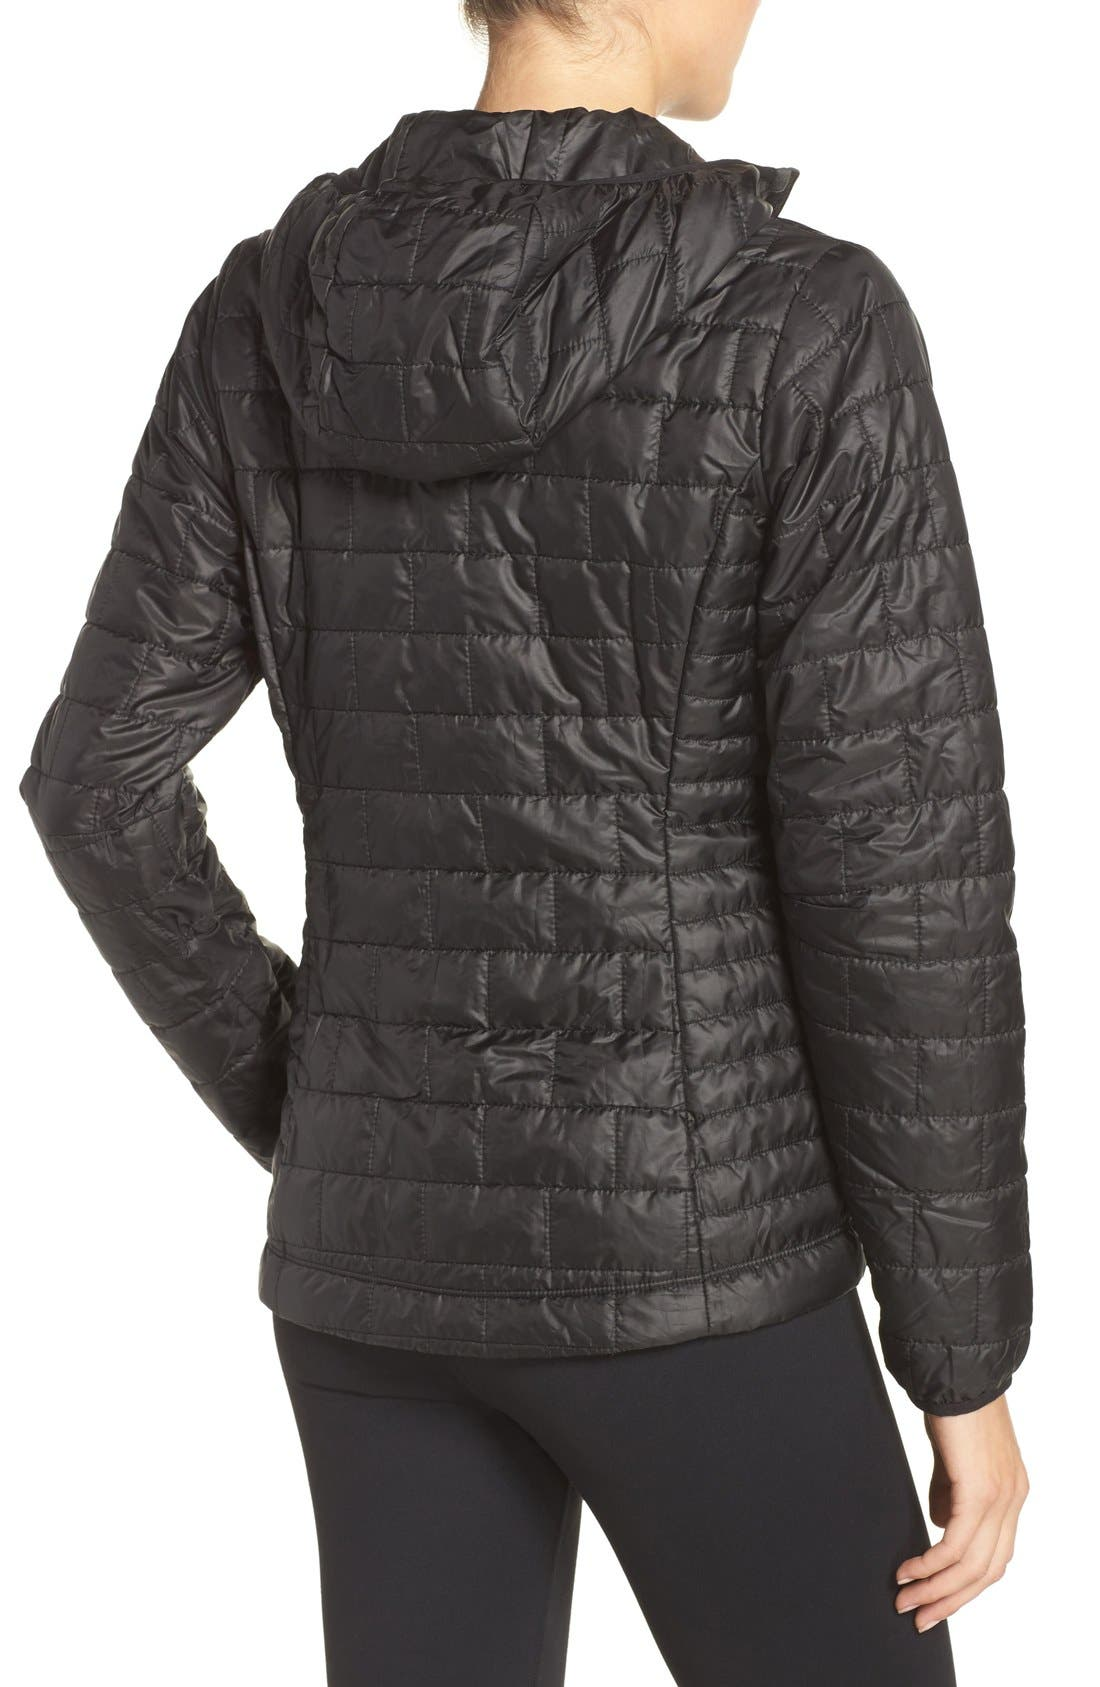 PATAGONIA, Nano Puff<sup>®</sup> Hooded Water Resistant Jacket, Alternate thumbnail 4, color, BLACK